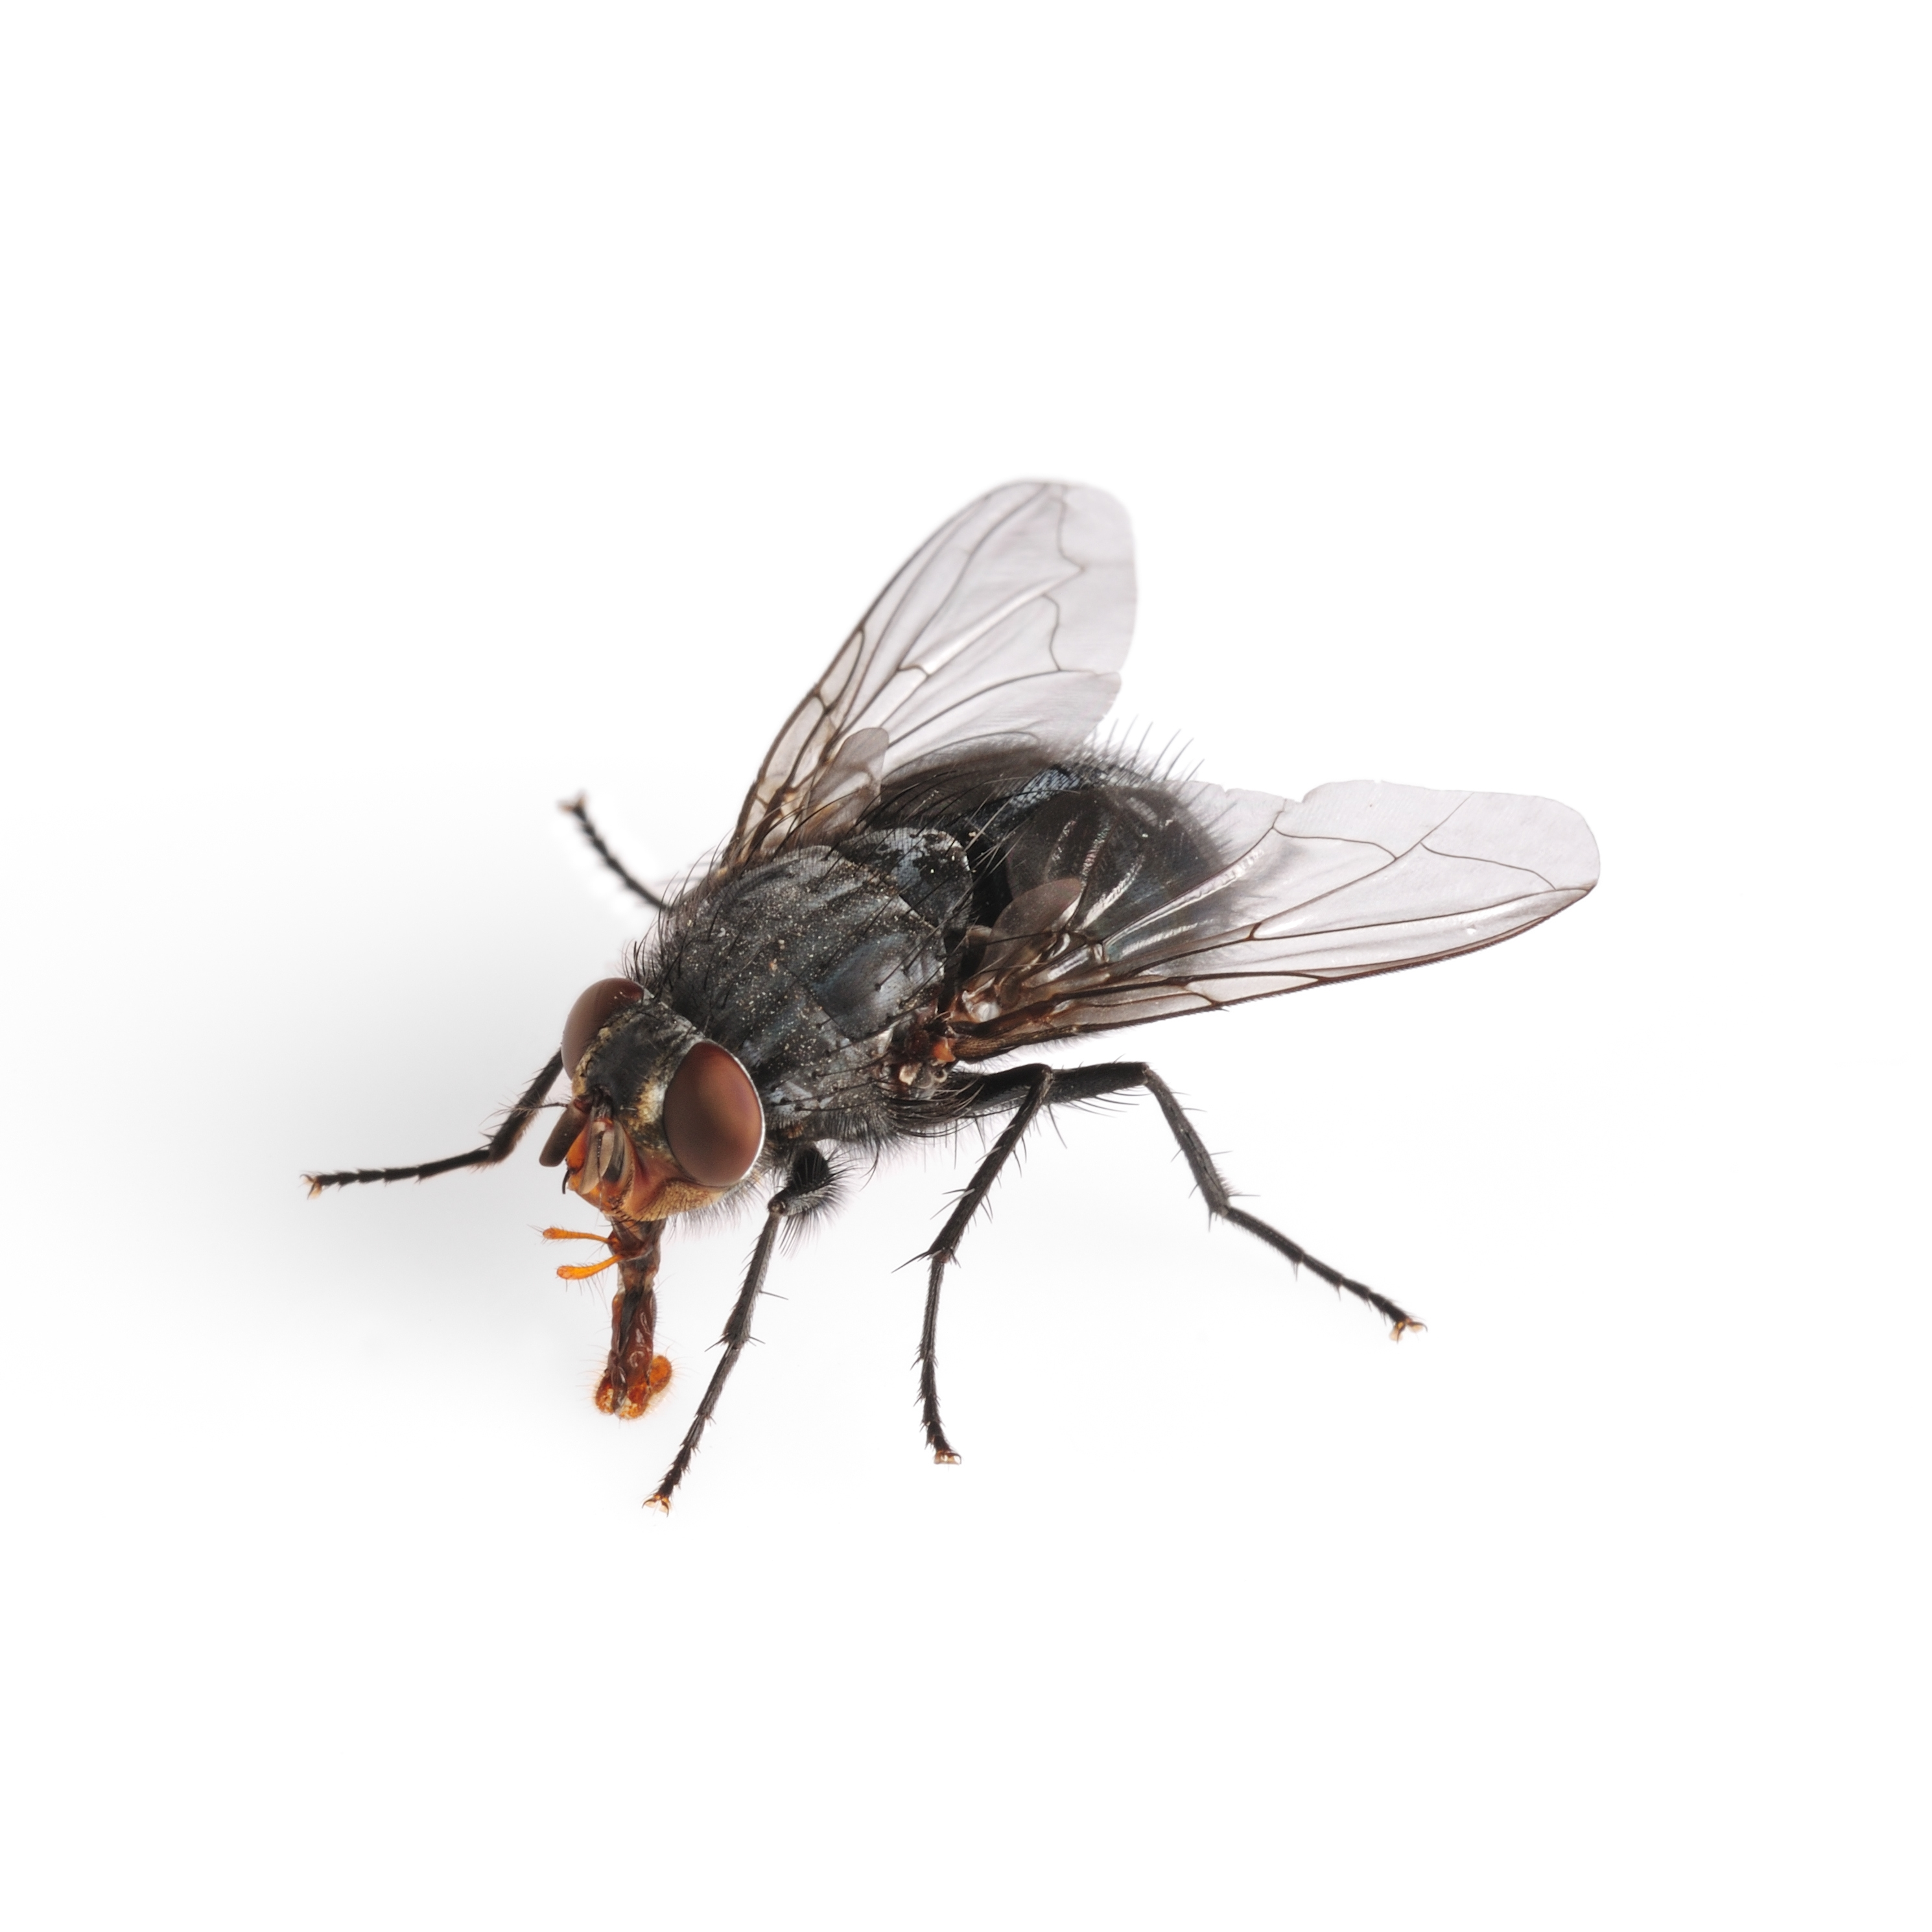 Images of Fly | 2980x2980